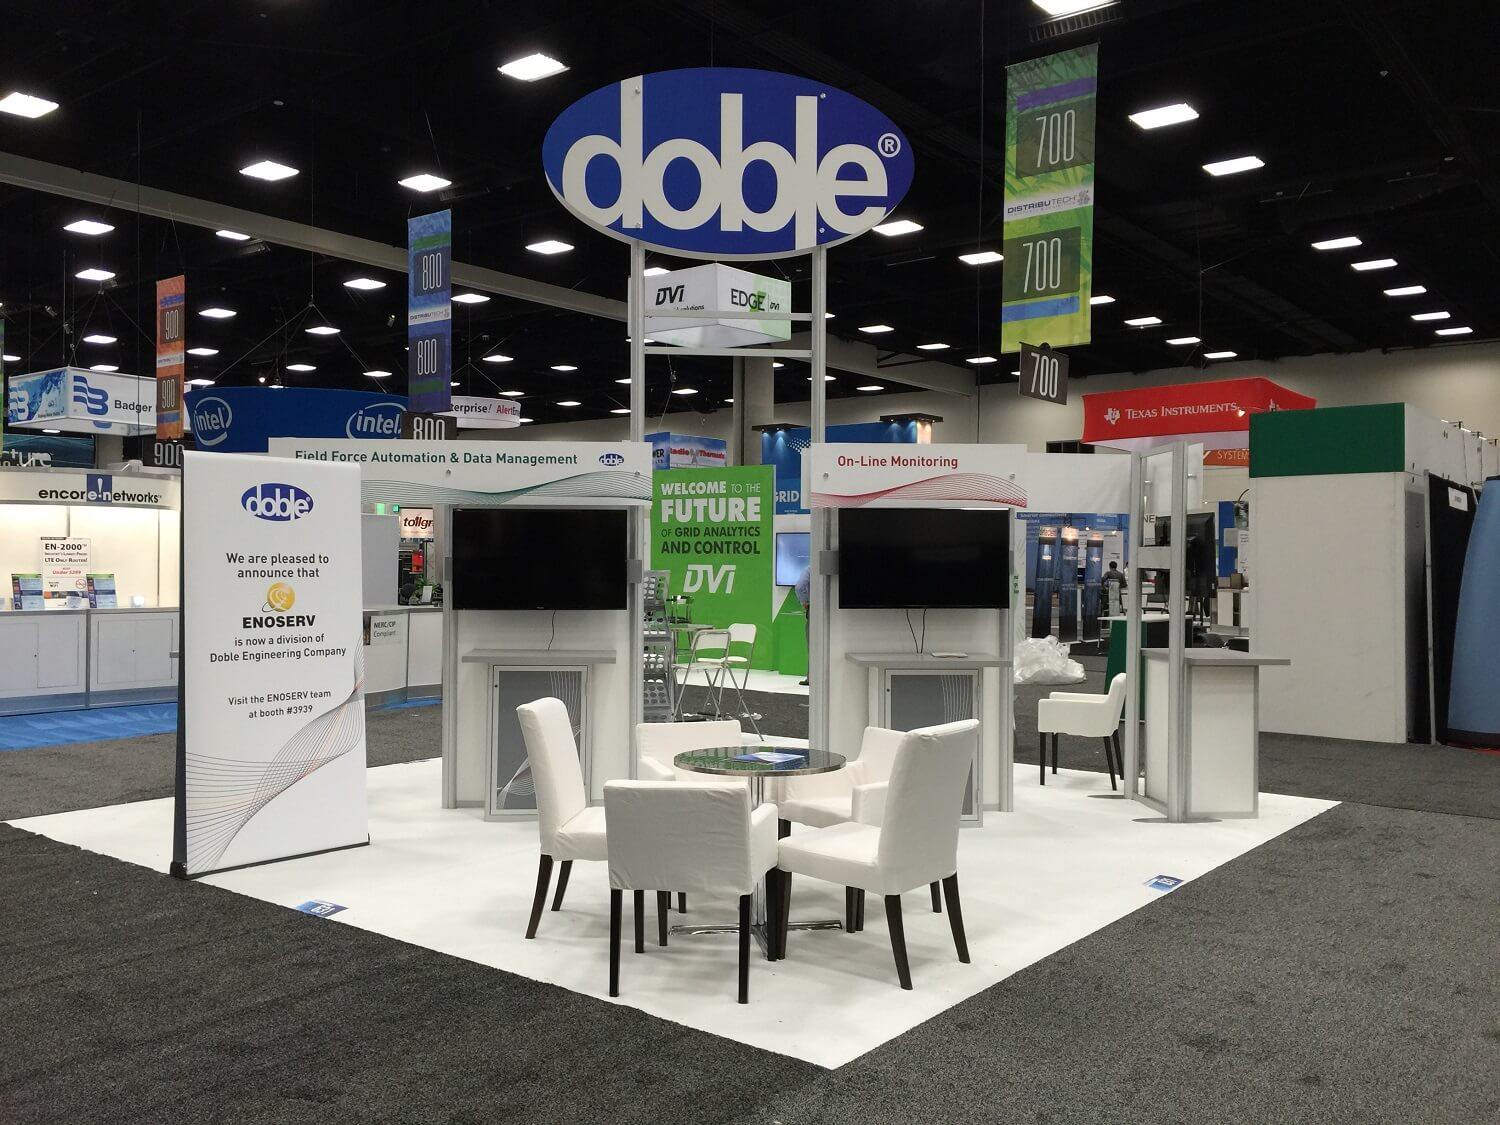 Doble booth resize.jpg